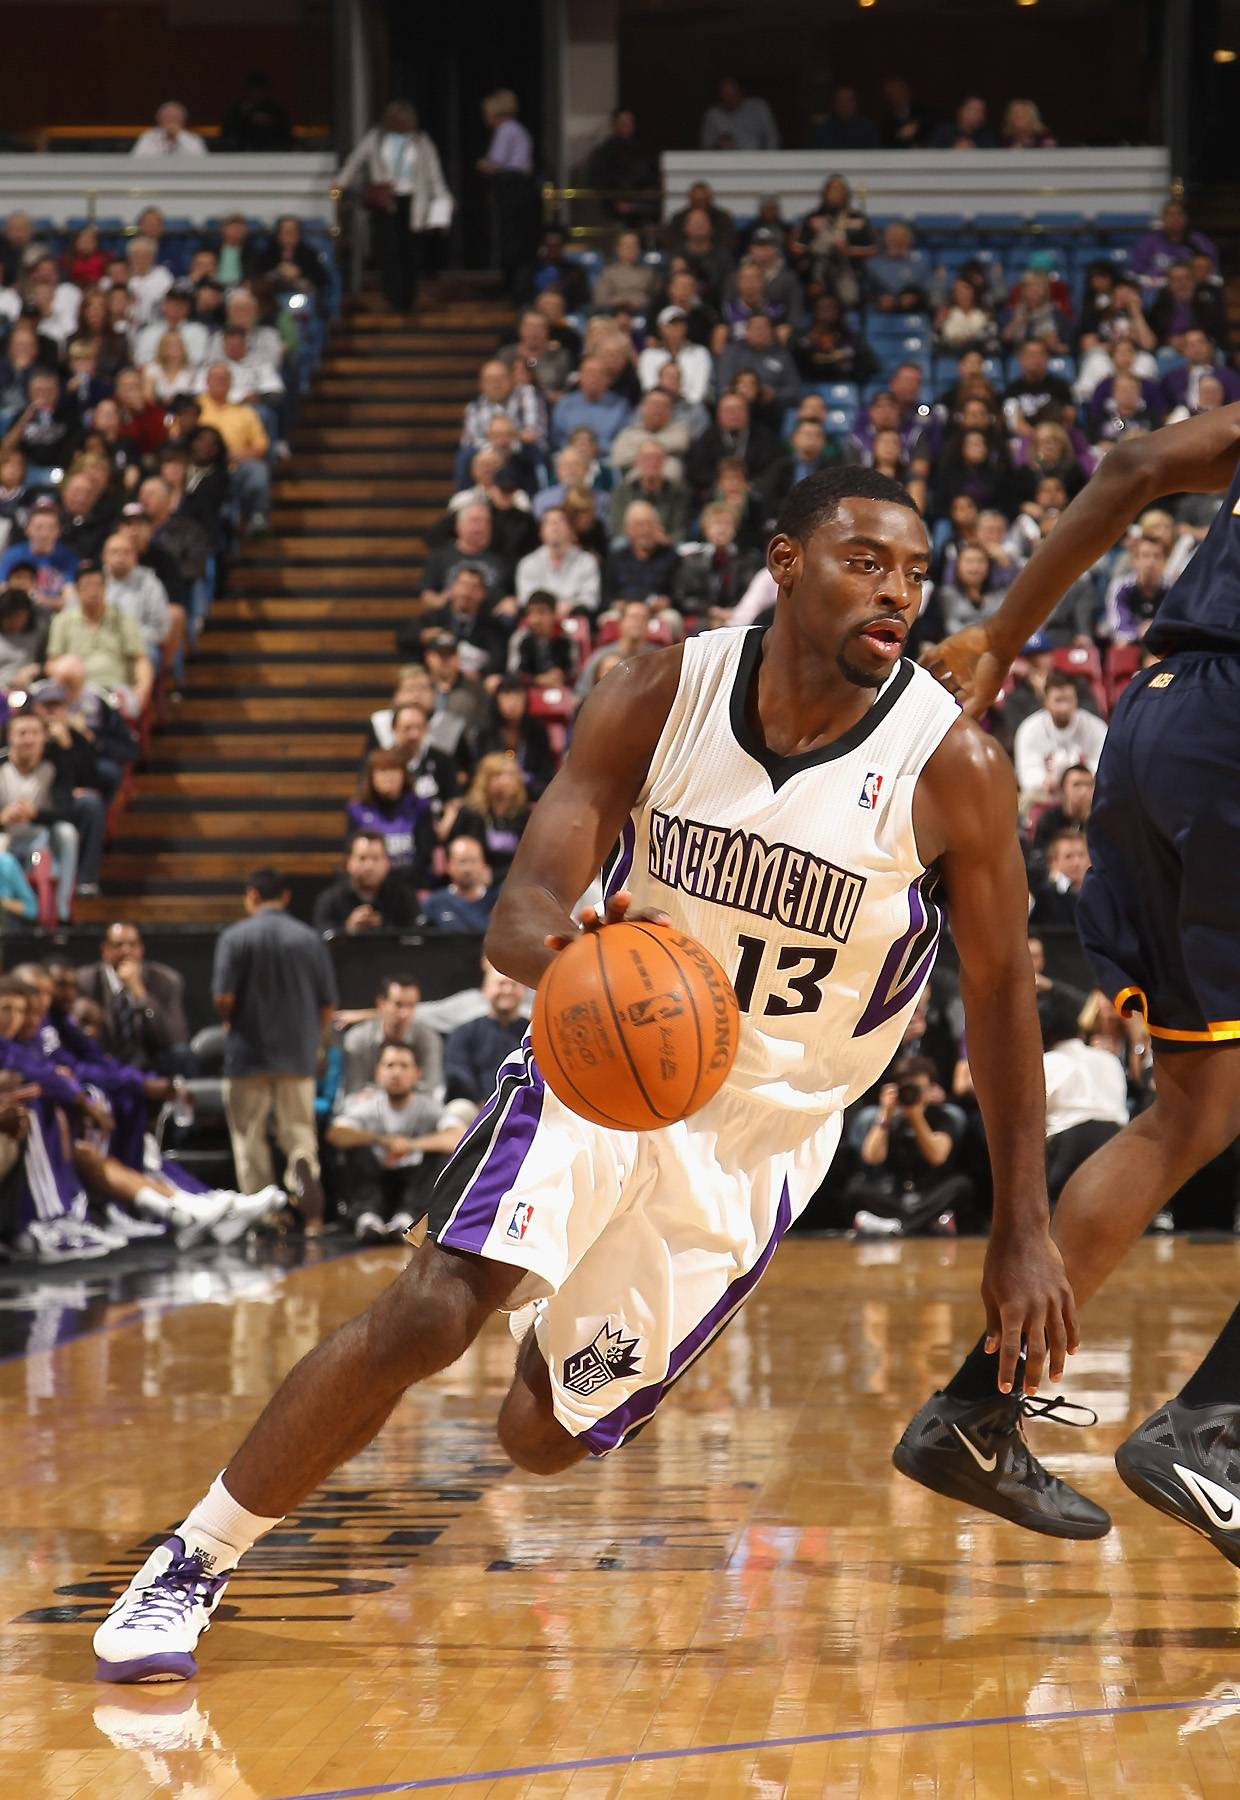 Tyreke Evans - After playing for the University of Memphis for a season, Tyreke Evans decided to enter the draft. He was the fourth overall pick and signed with the Sacramento Kings. He was the 2009-2010 Rookie of the Year.(Photo: Ezra Shaw/Getty Images)